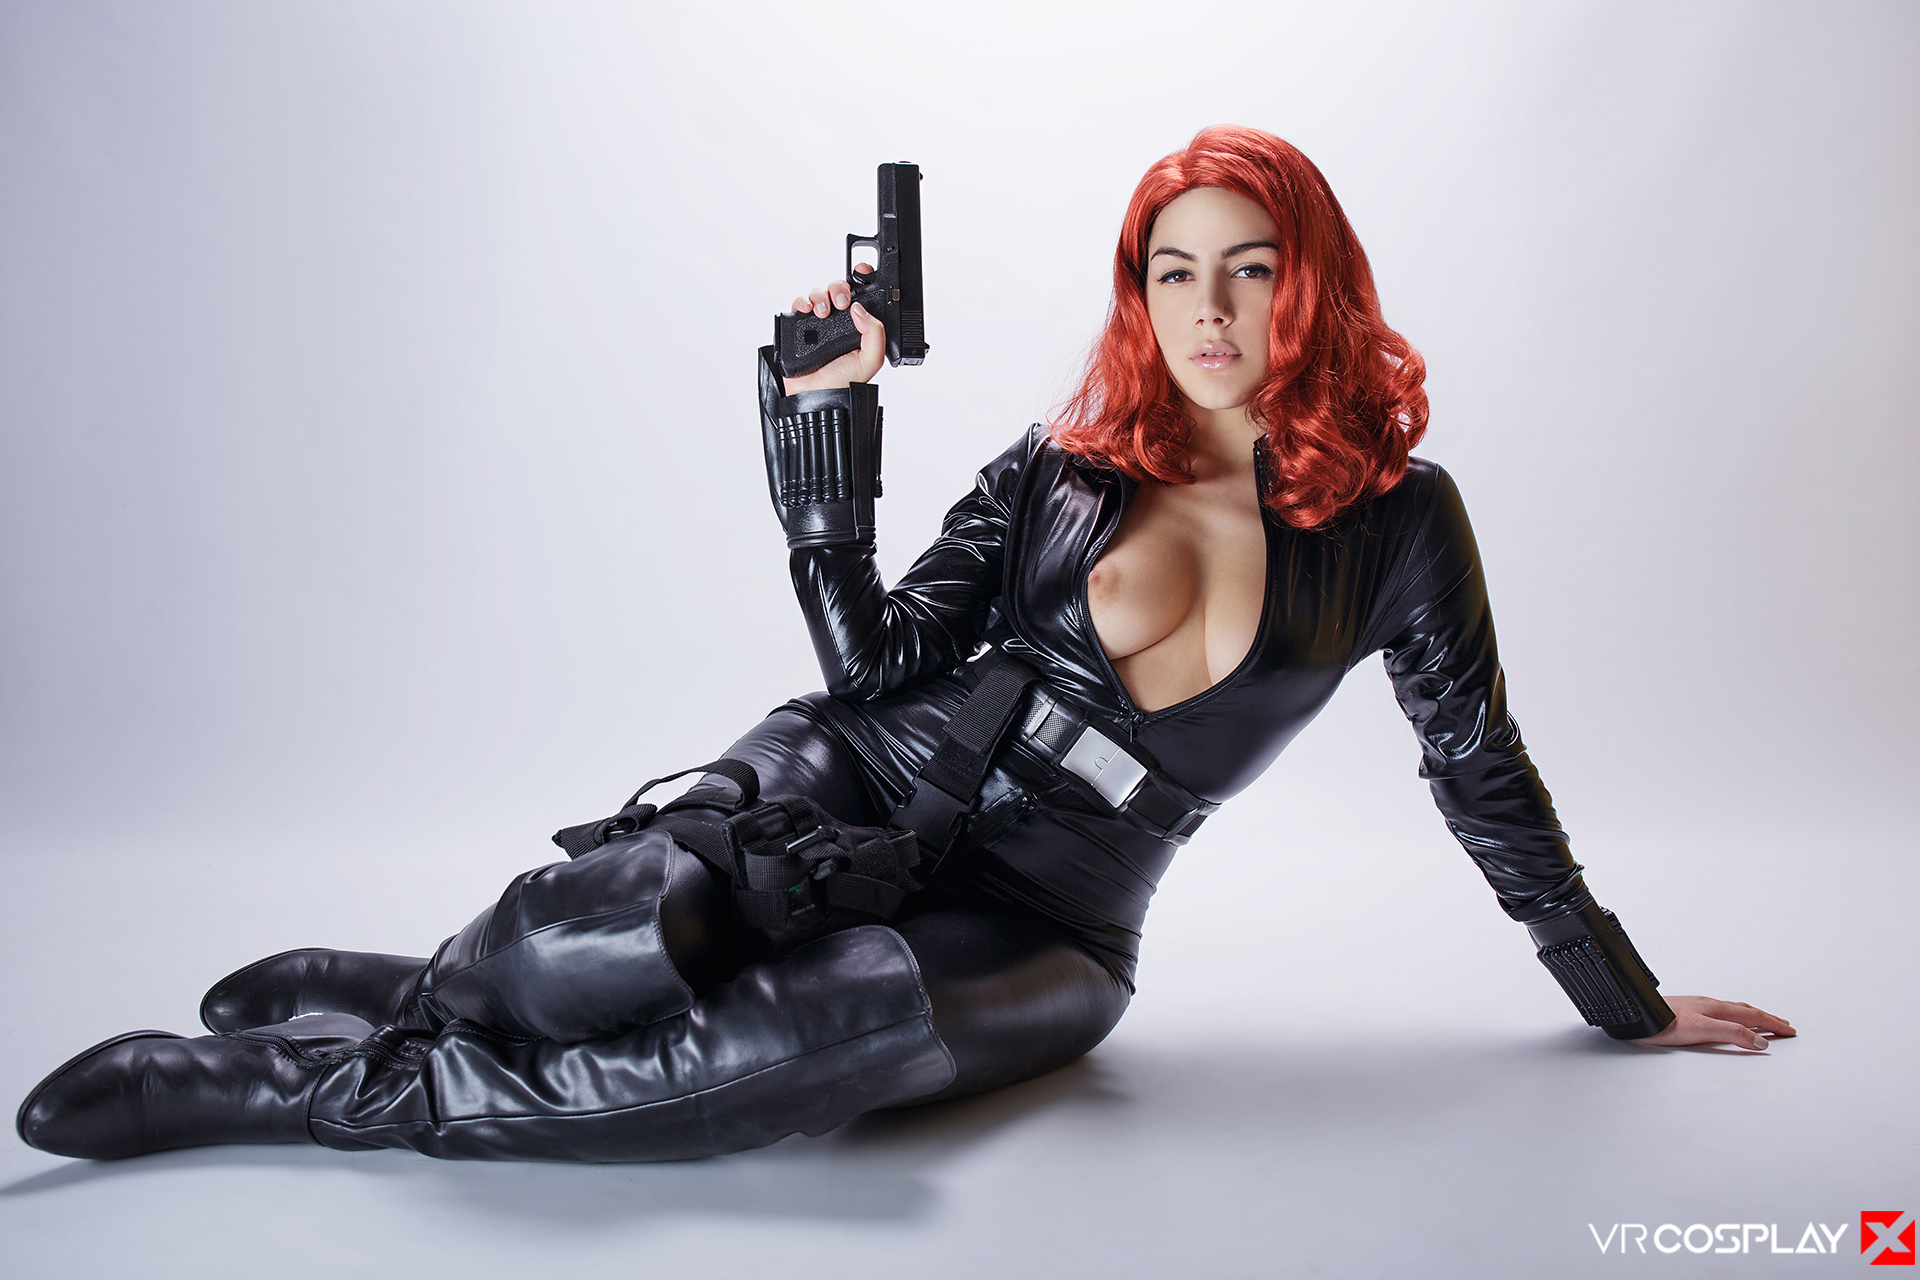 Avengers VR Porn Cosplay Black Widow